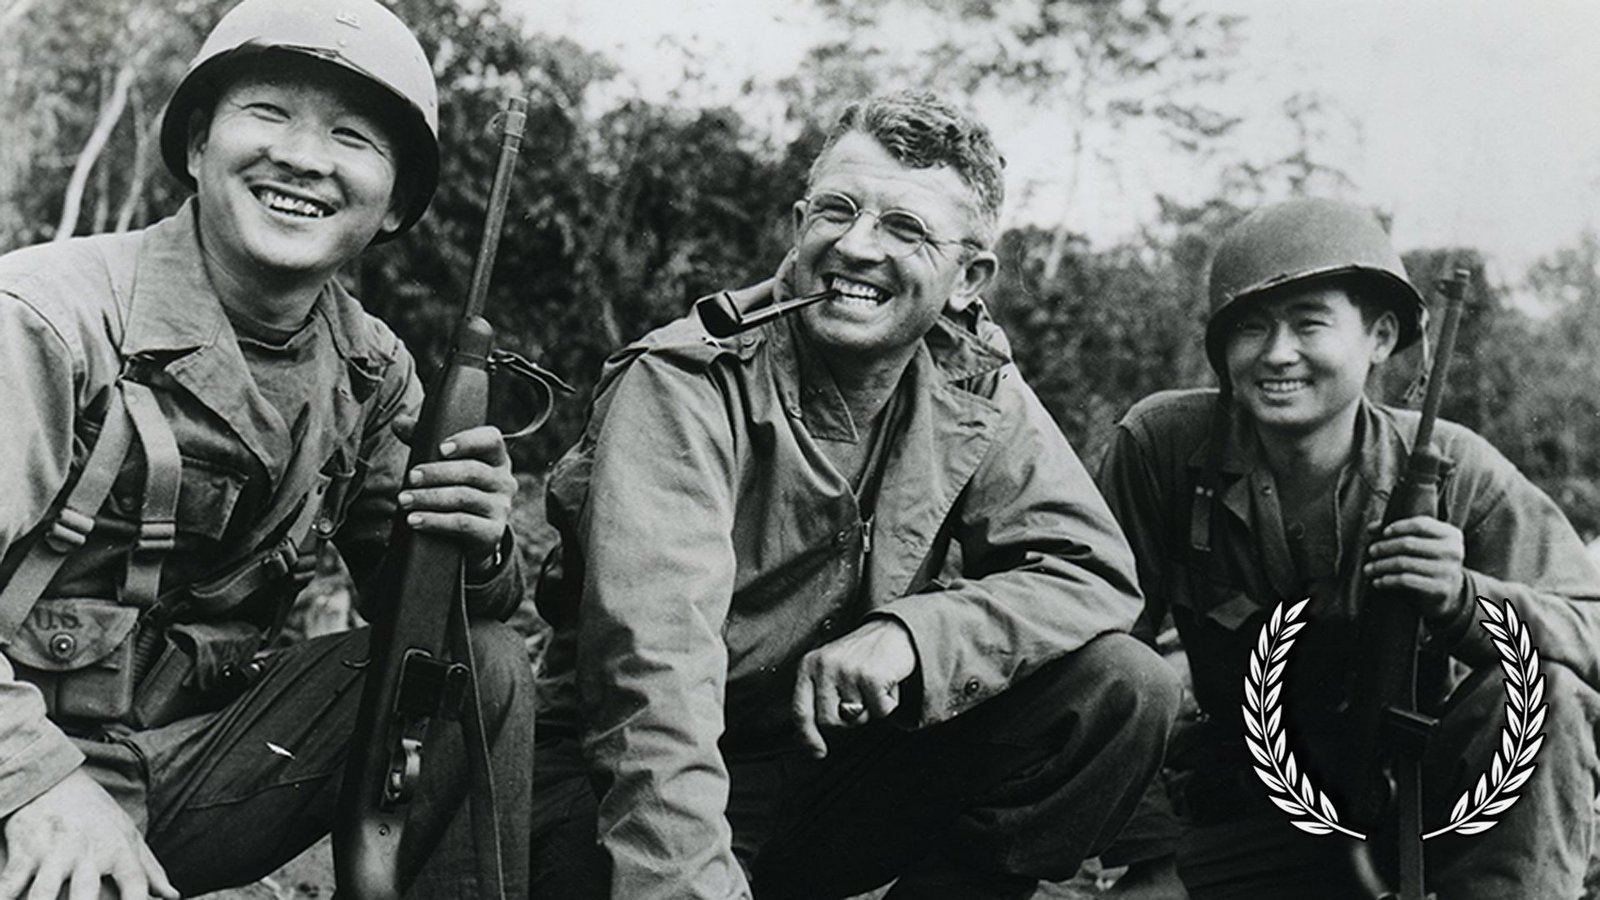 The Color of Honor - The Japanese American Soldier in WWII